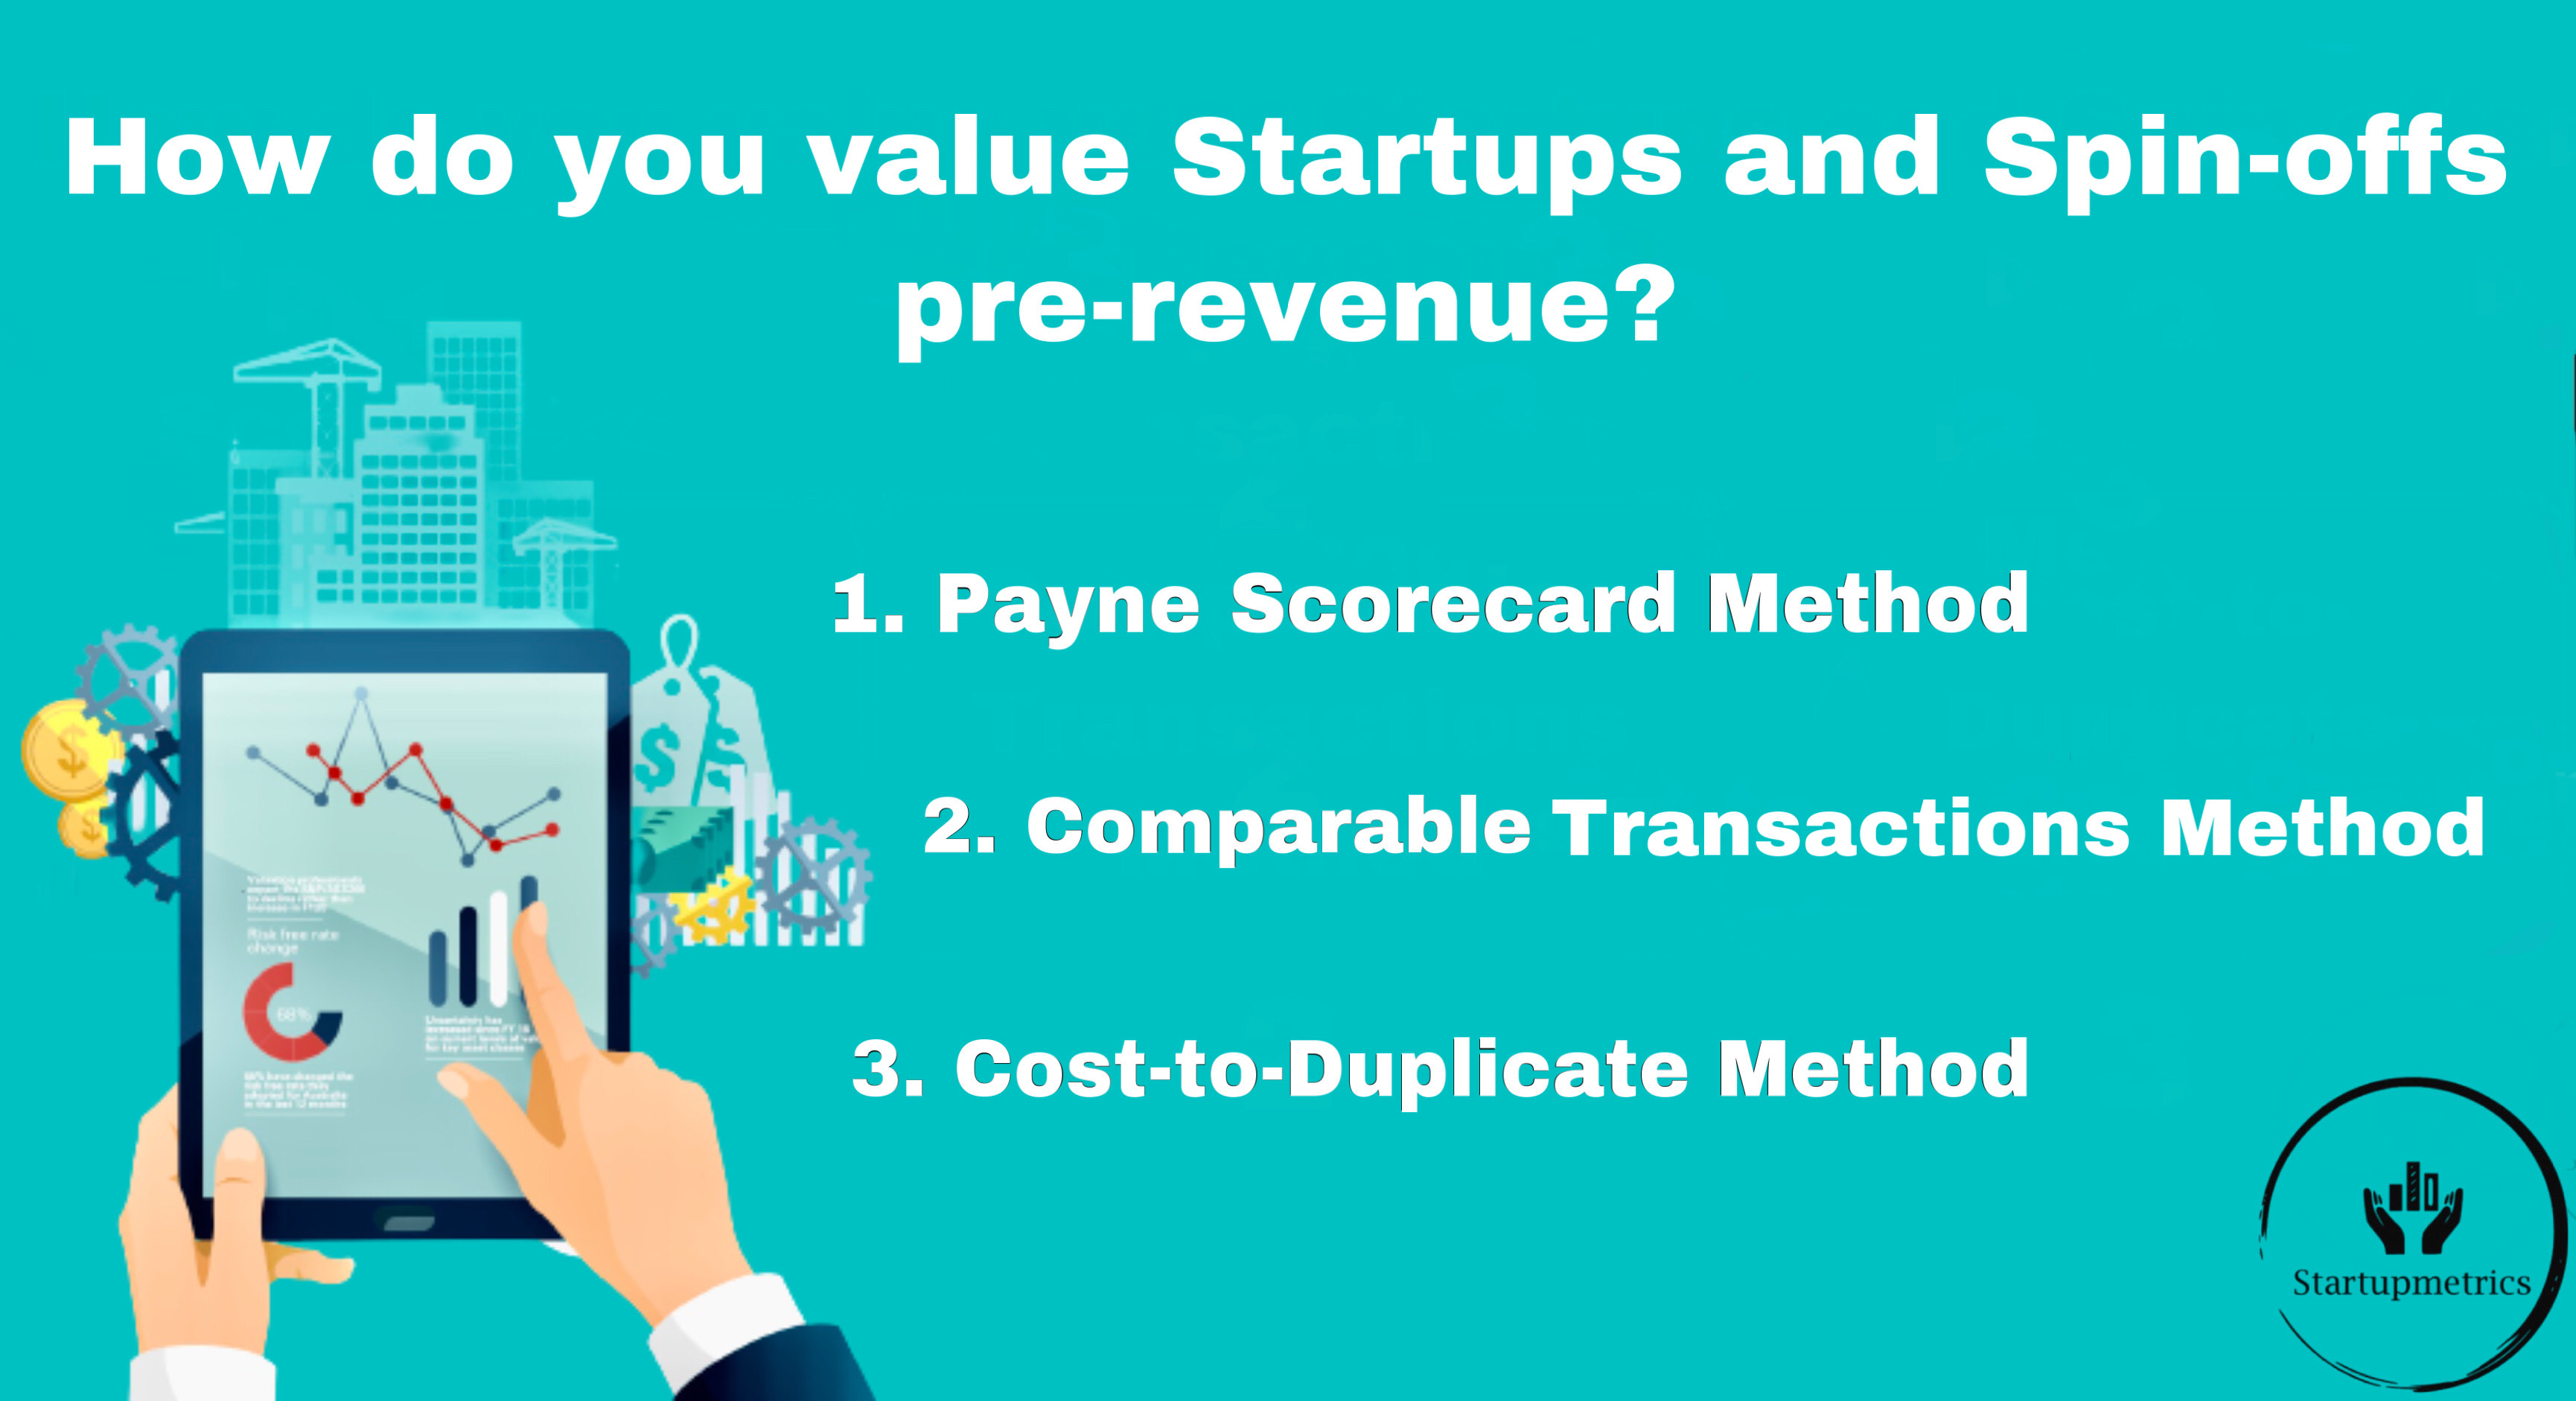 How do you value startups and spin-offs pre-revenue?